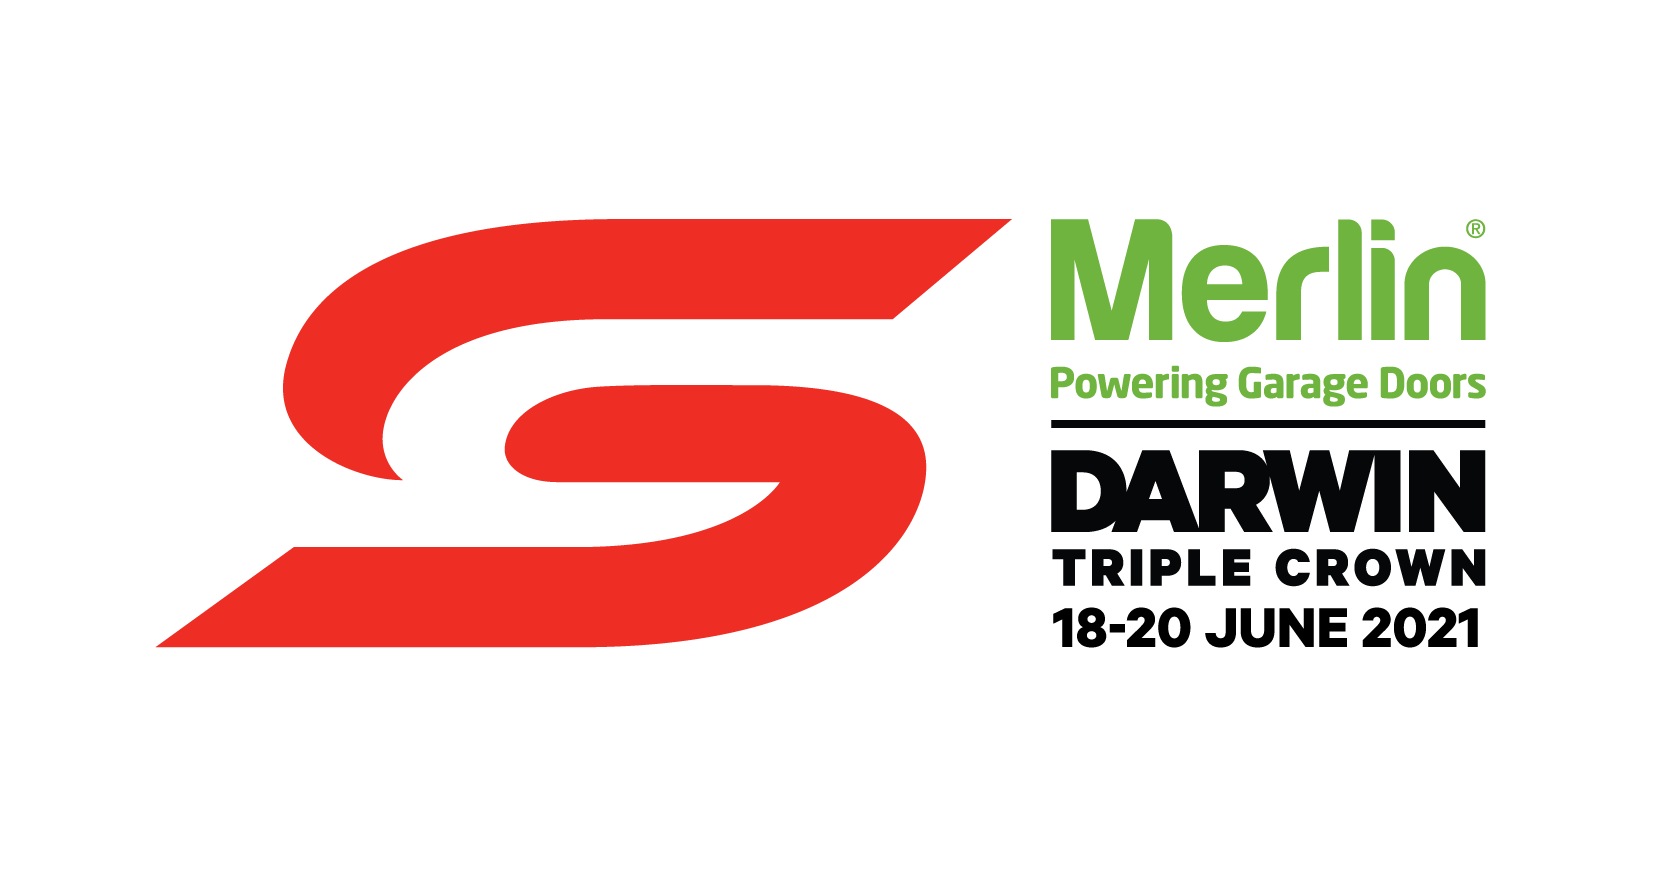 V8 Supercars - Merlin Darwin Triple Crown logo